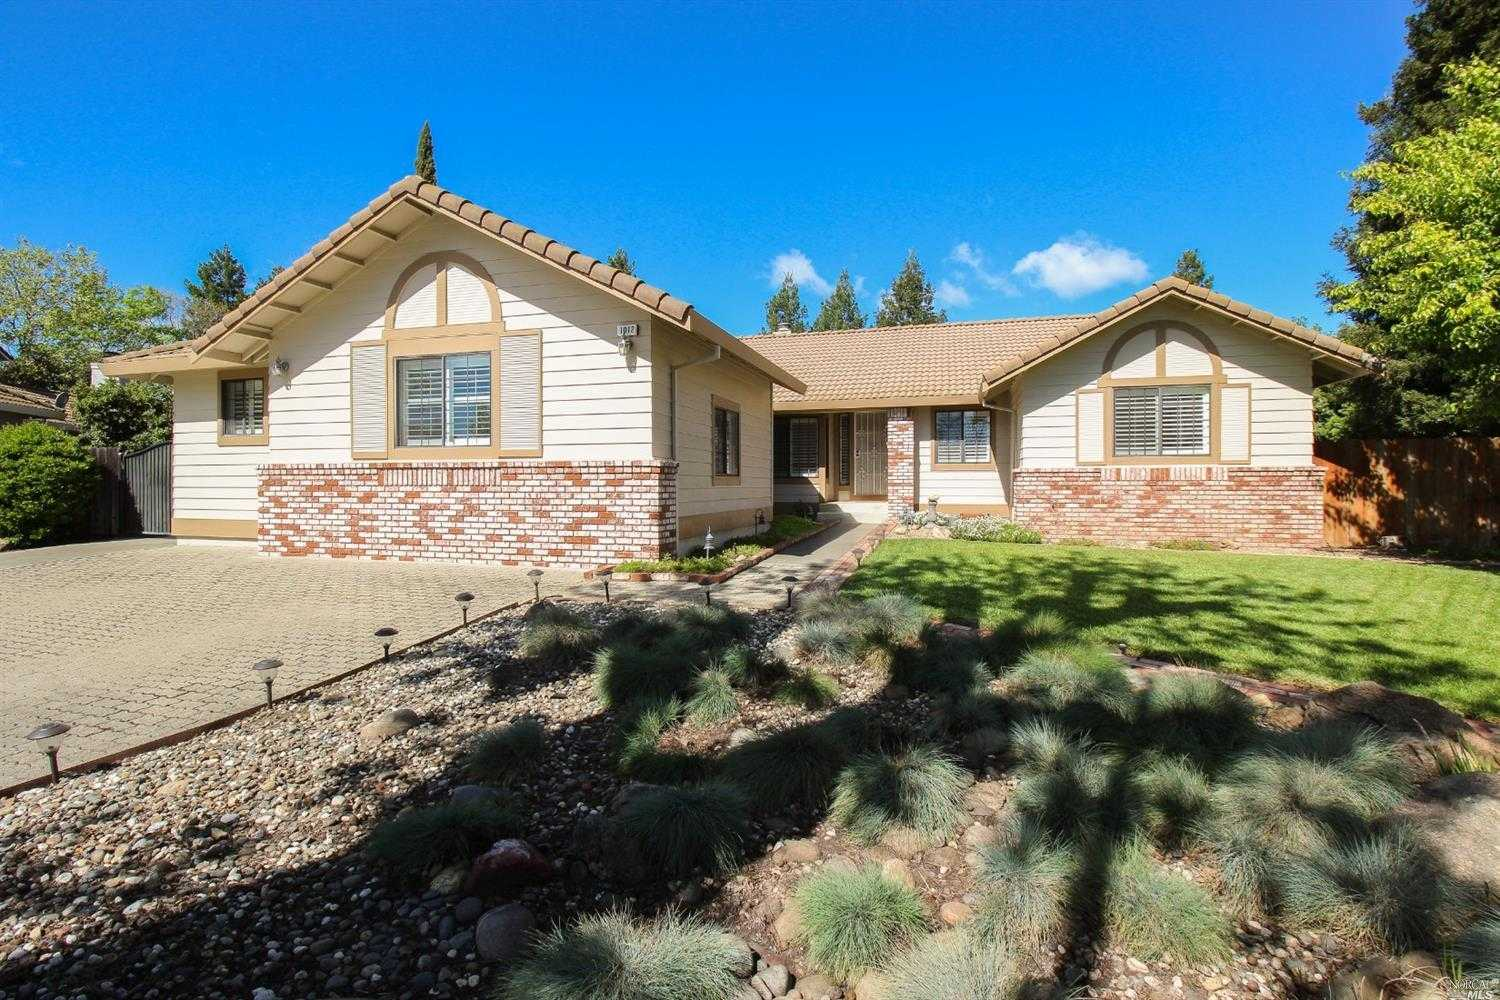 $675,000 - 5Br/3Ba -  for Sale in Vacaville